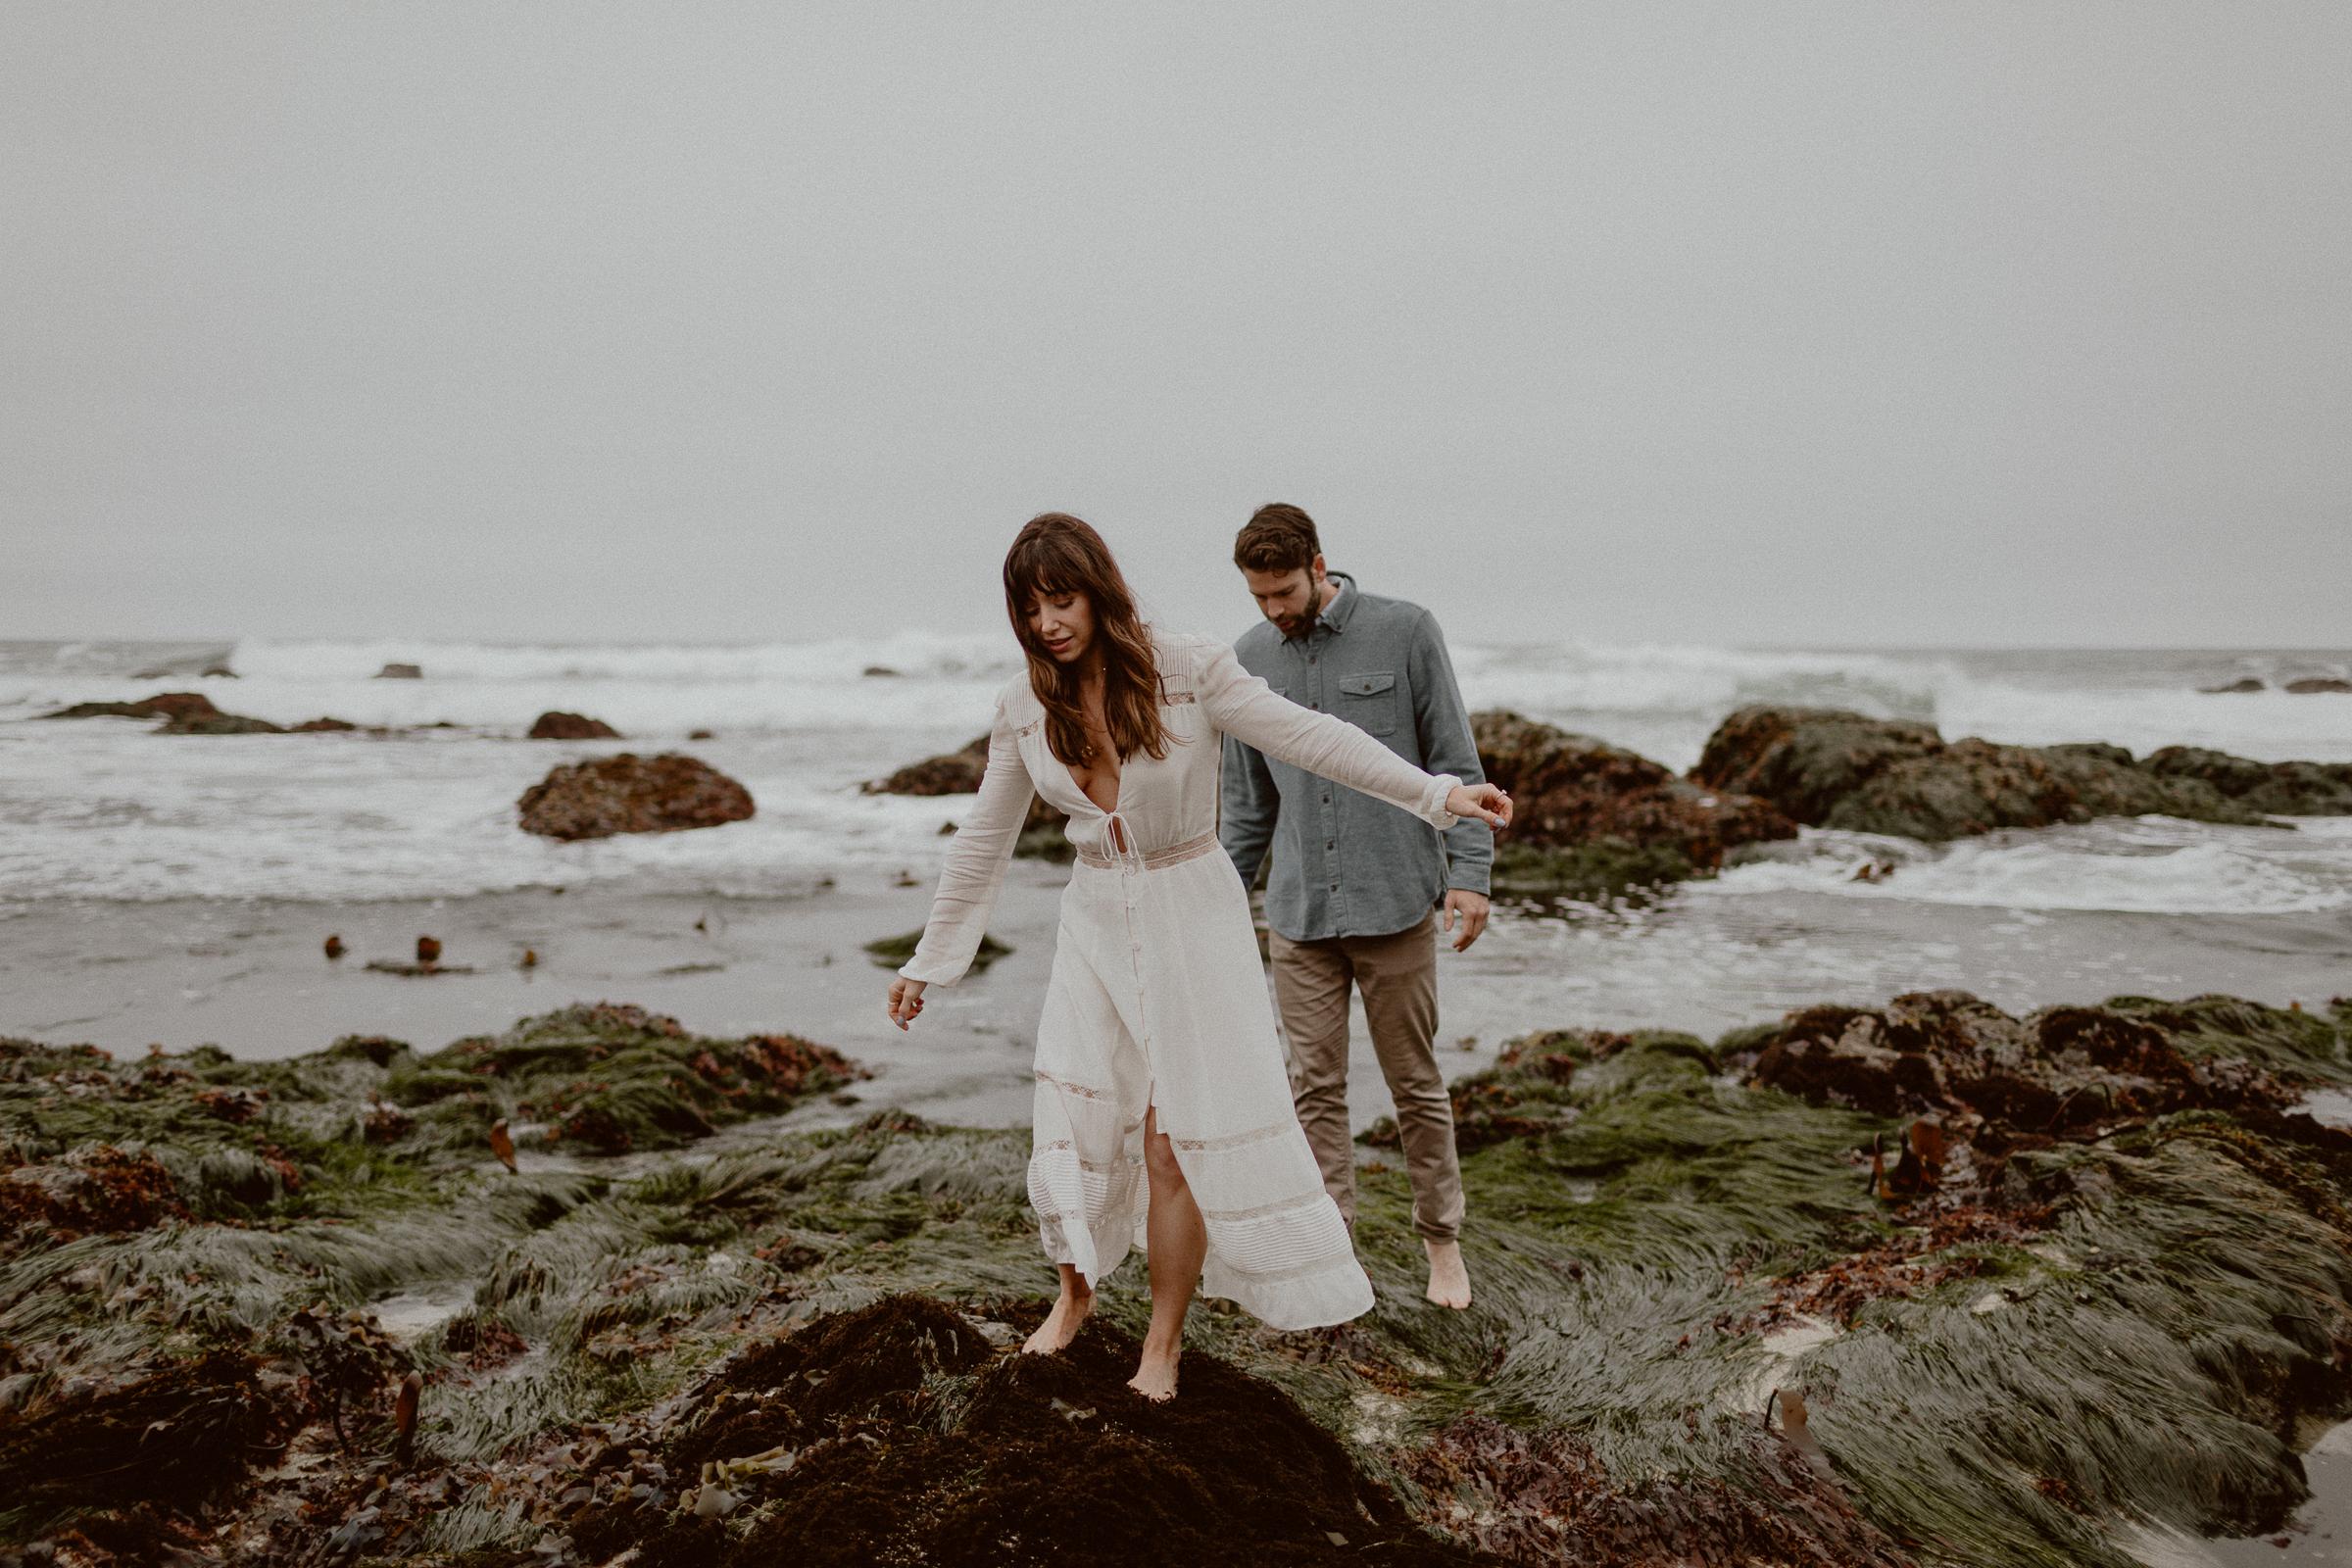 Romantic Bodega Bay Engagement Session | Gretchen Gause Photography #theknotwedding #romanticshoot #couplesshoot #sfweddingphotographer #sfelopement #engagementsession #bodegabay #gretchengausephotography